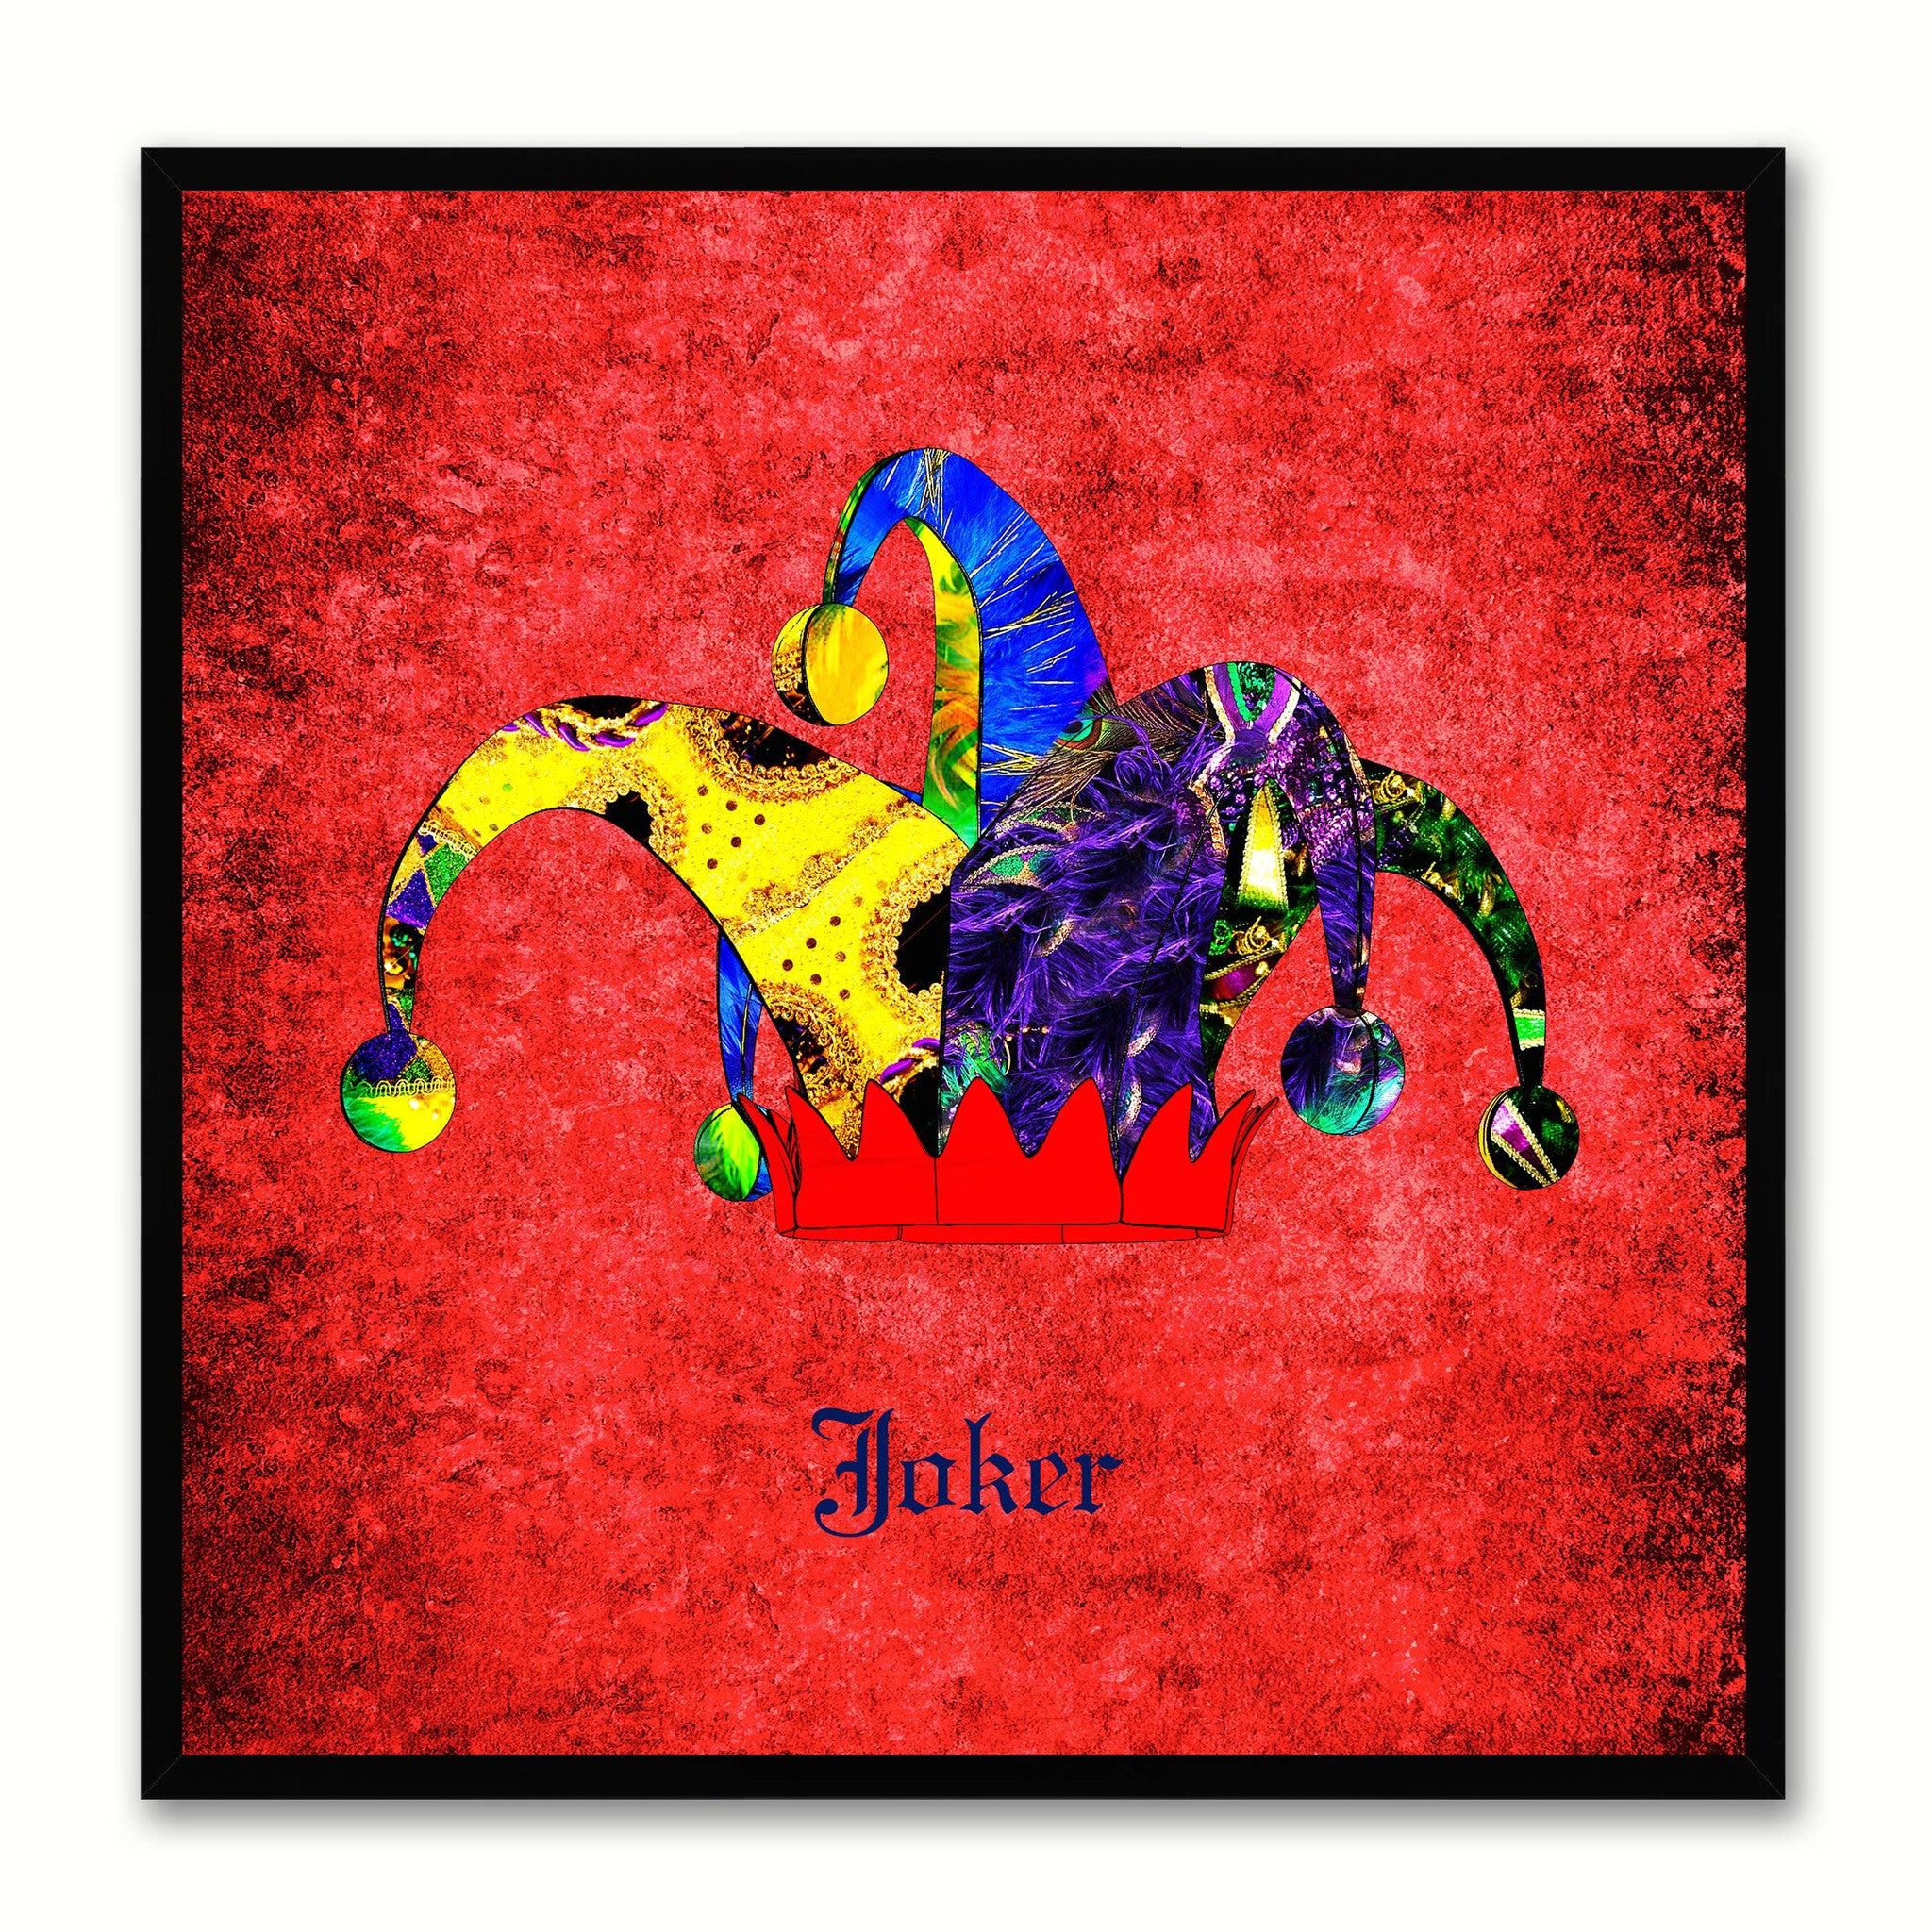 Joker Red Canvas Print Black Frame Kids Bedroom Wall Home Décor